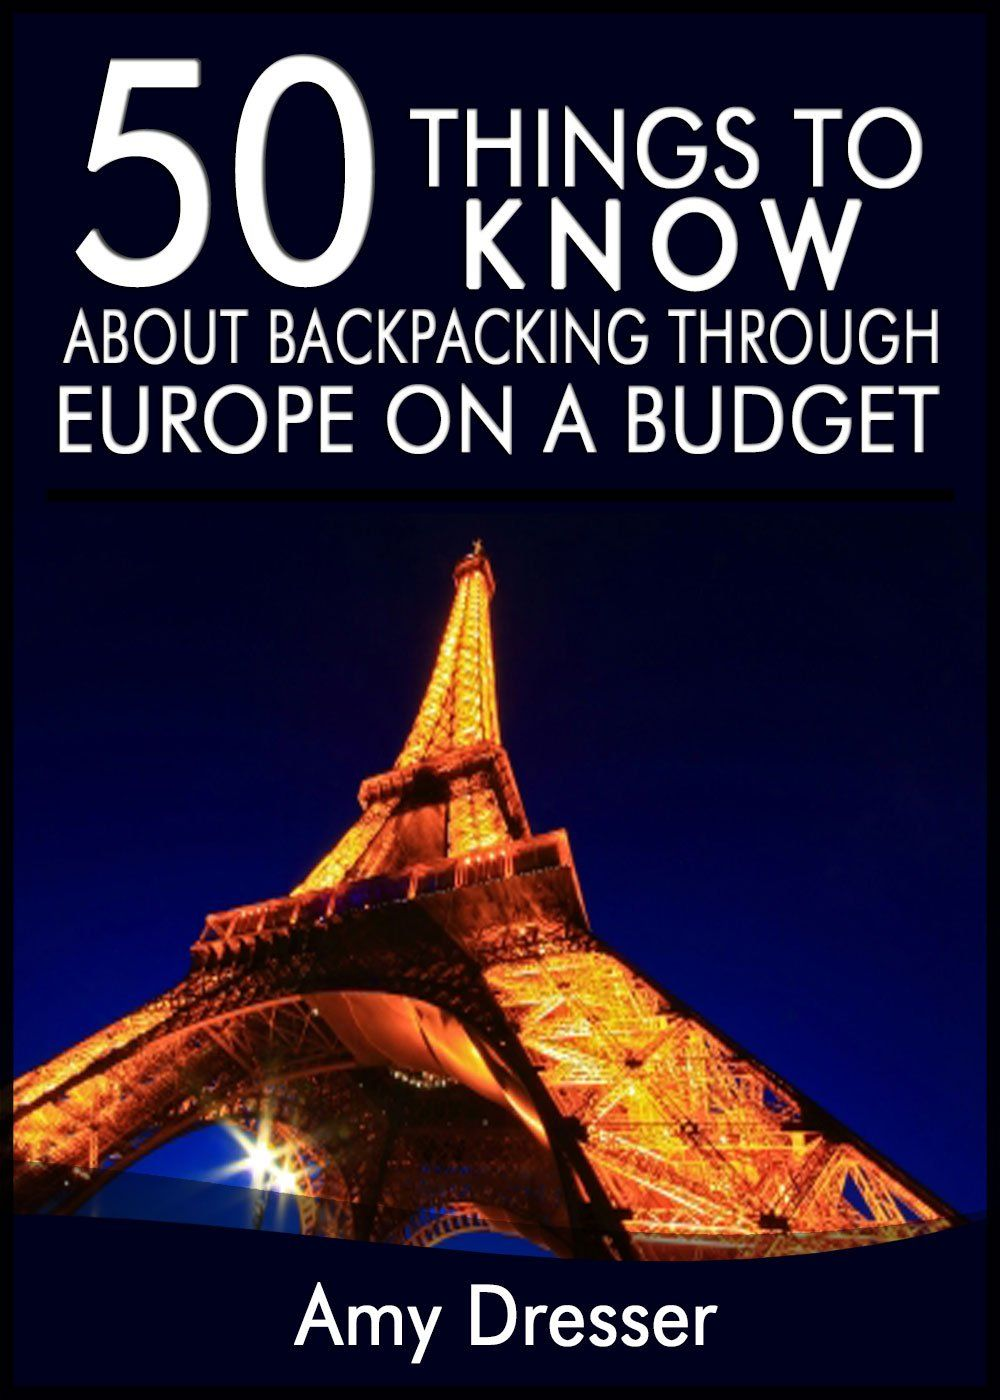 50 things to know about backpacking through europe on a